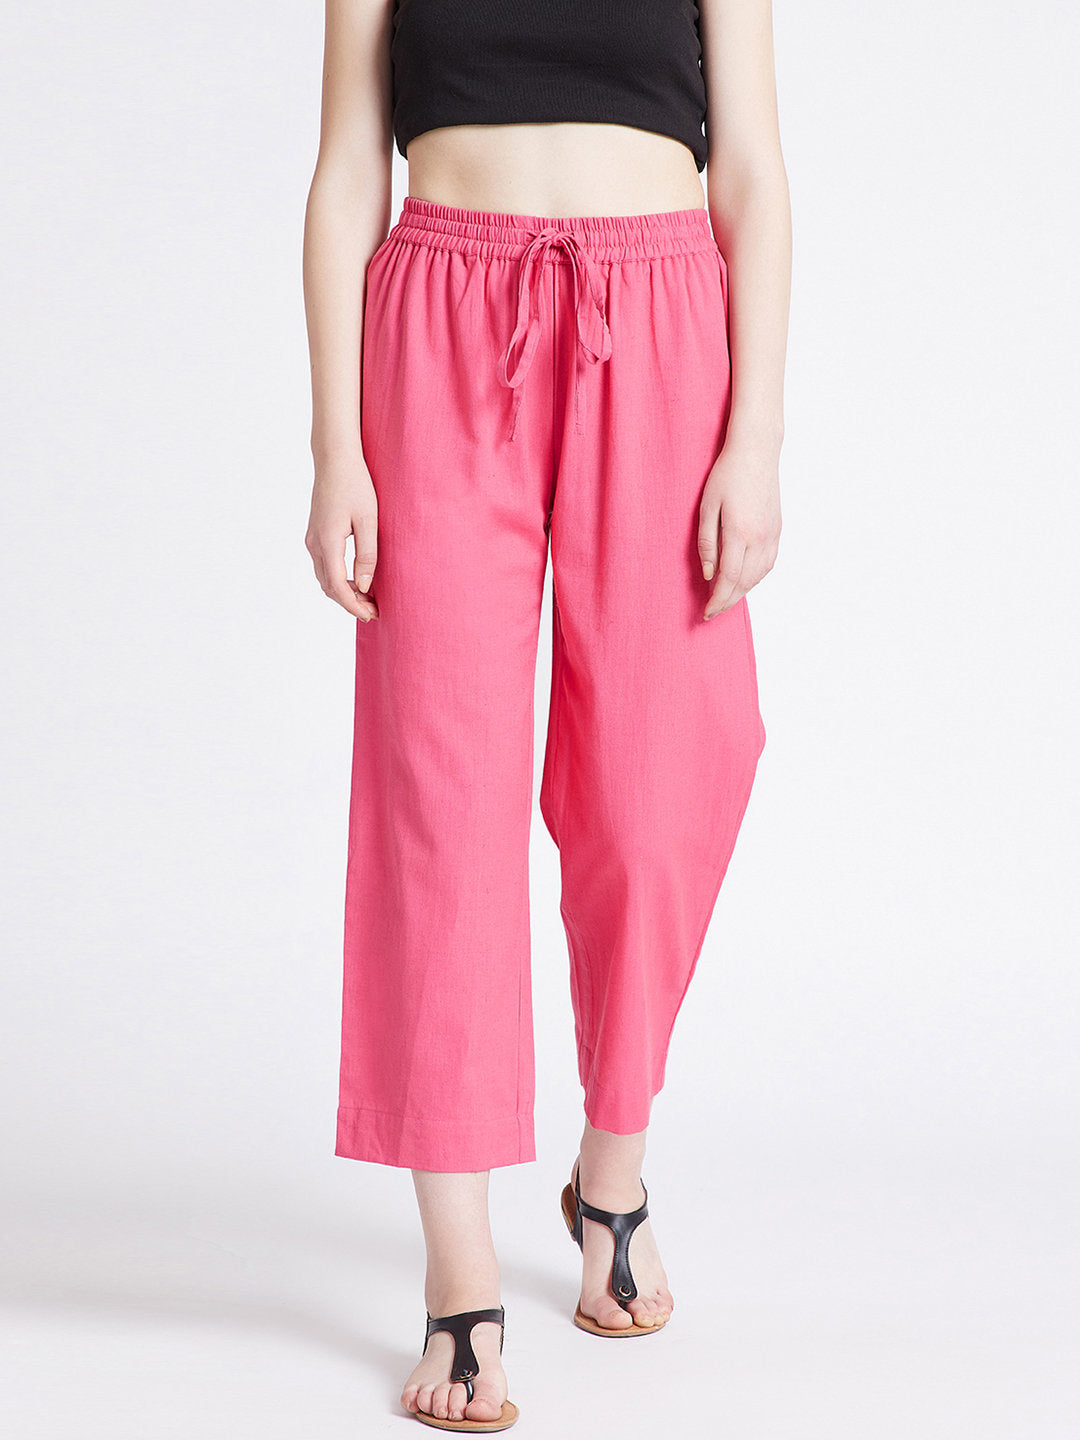 Pink cotton straight pants with pockets